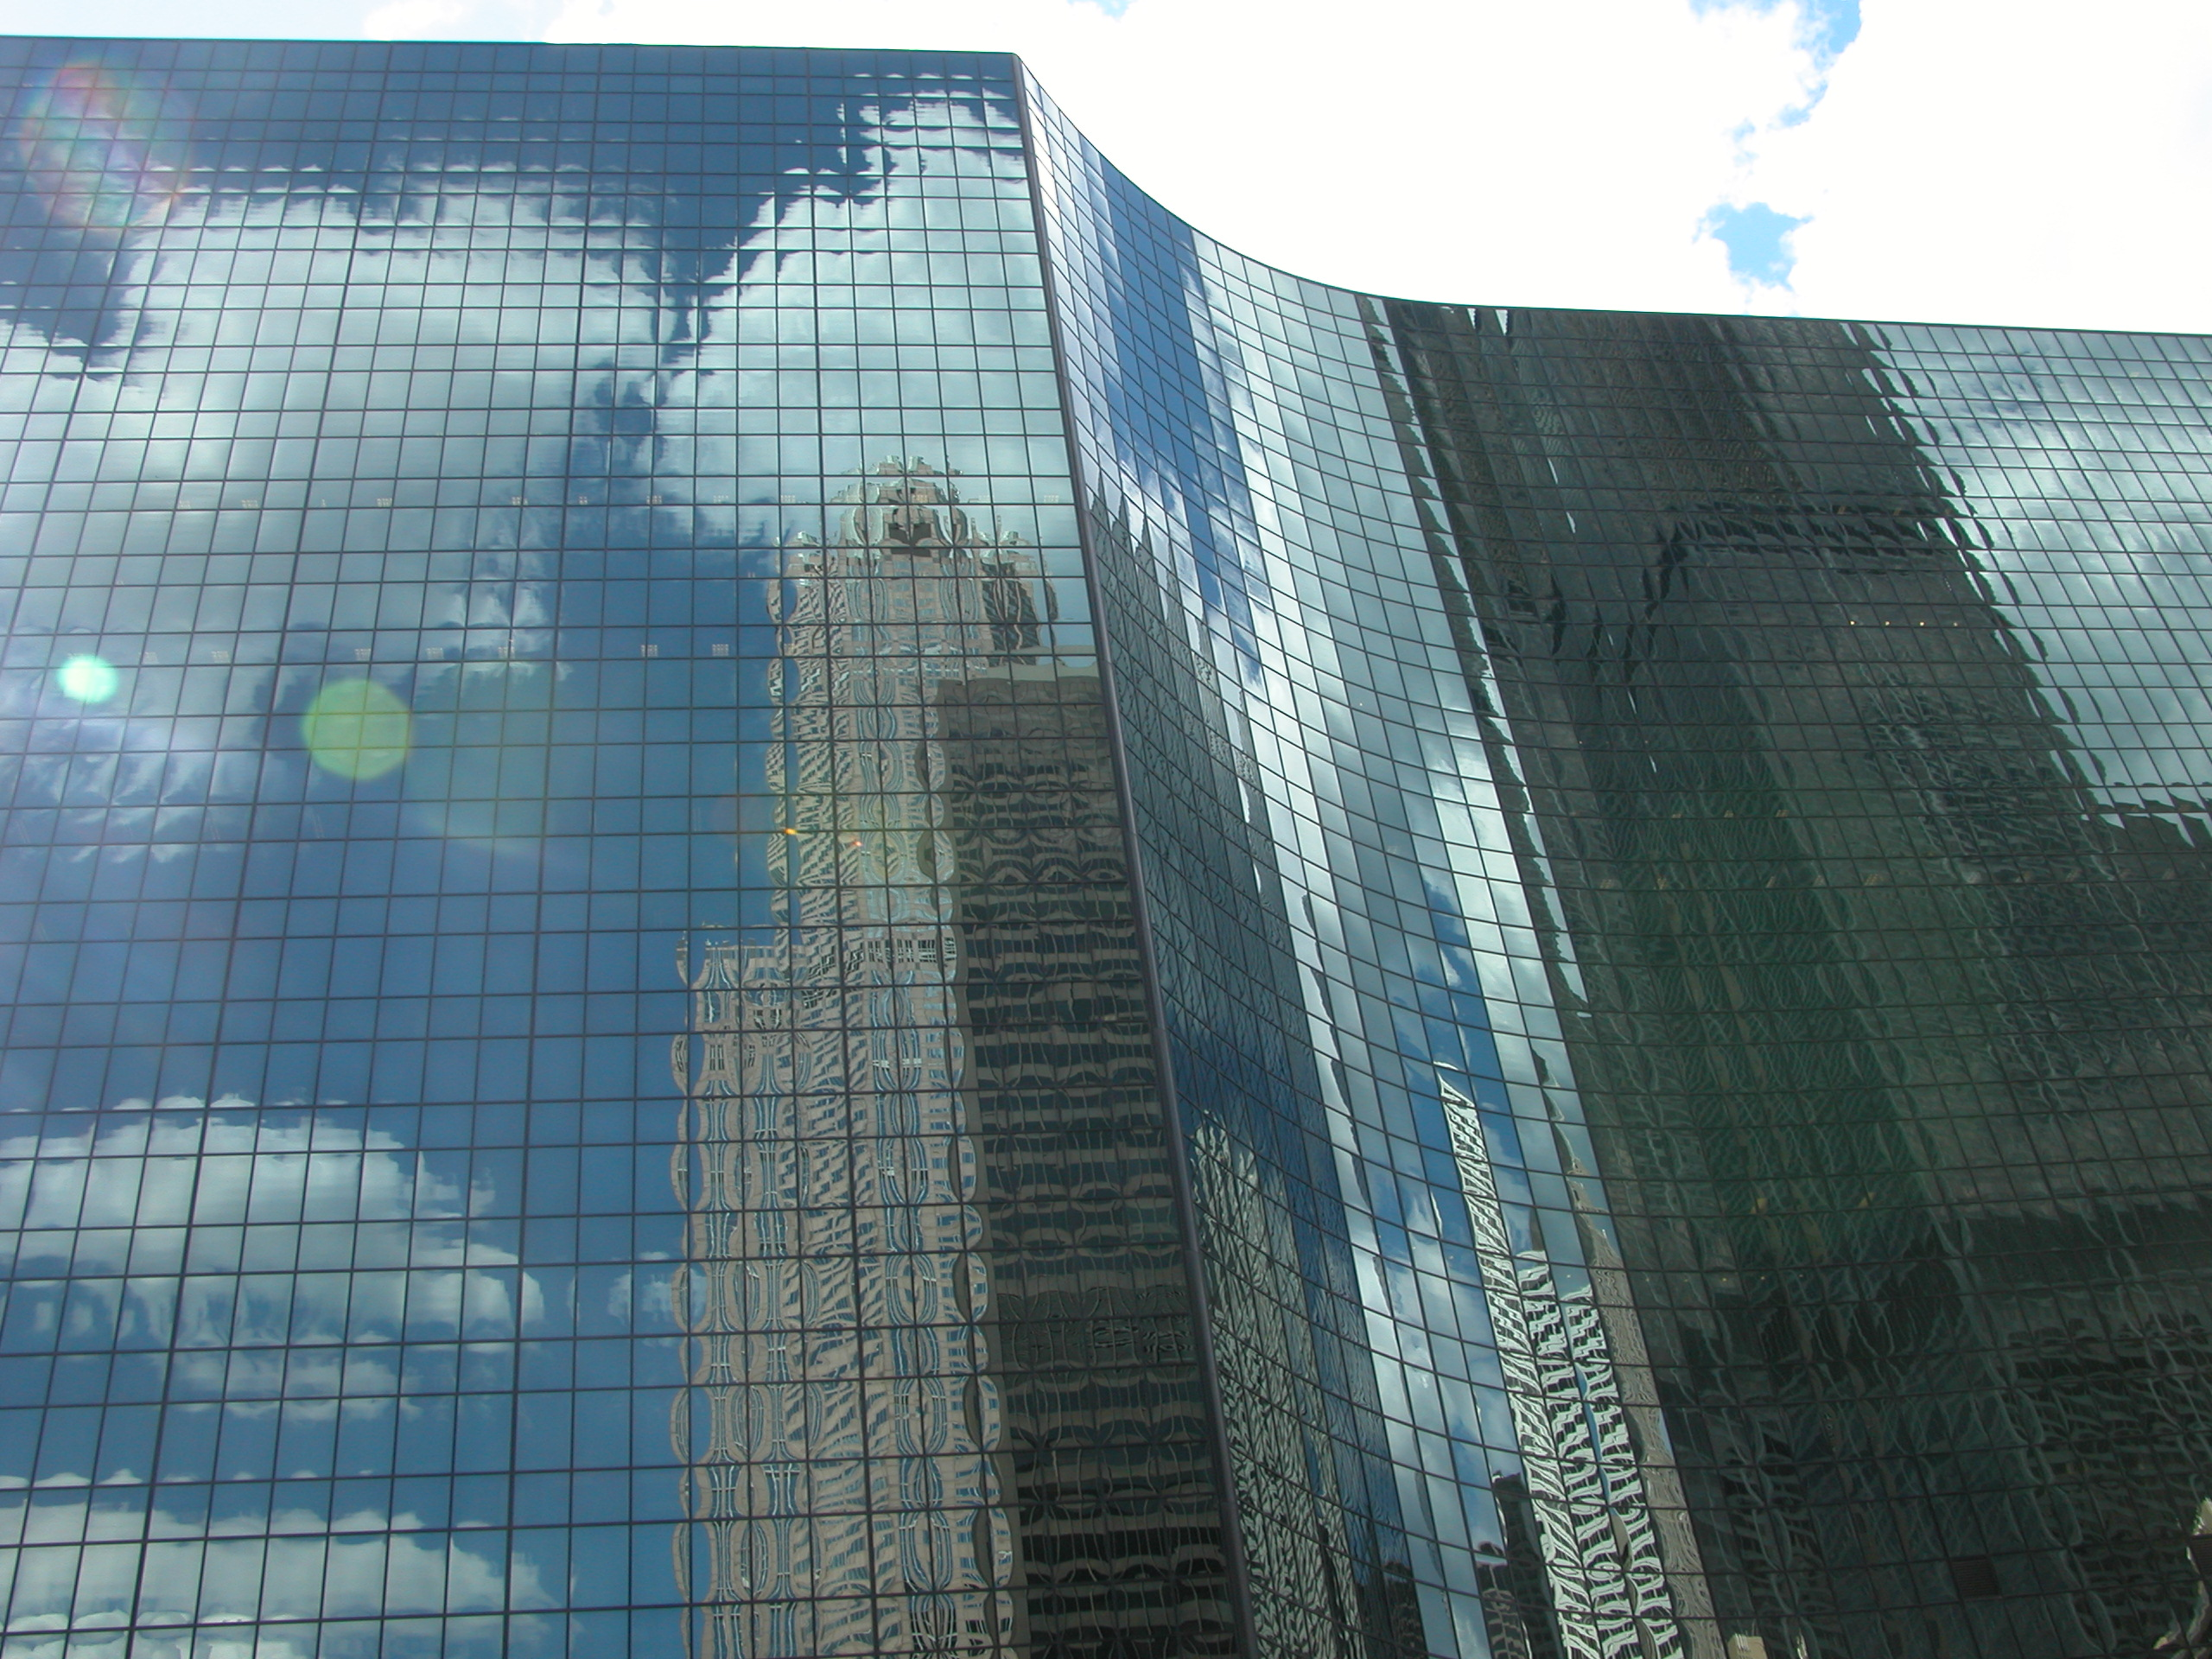 FileGlass building in Chicagojpg Wikimedia Commons